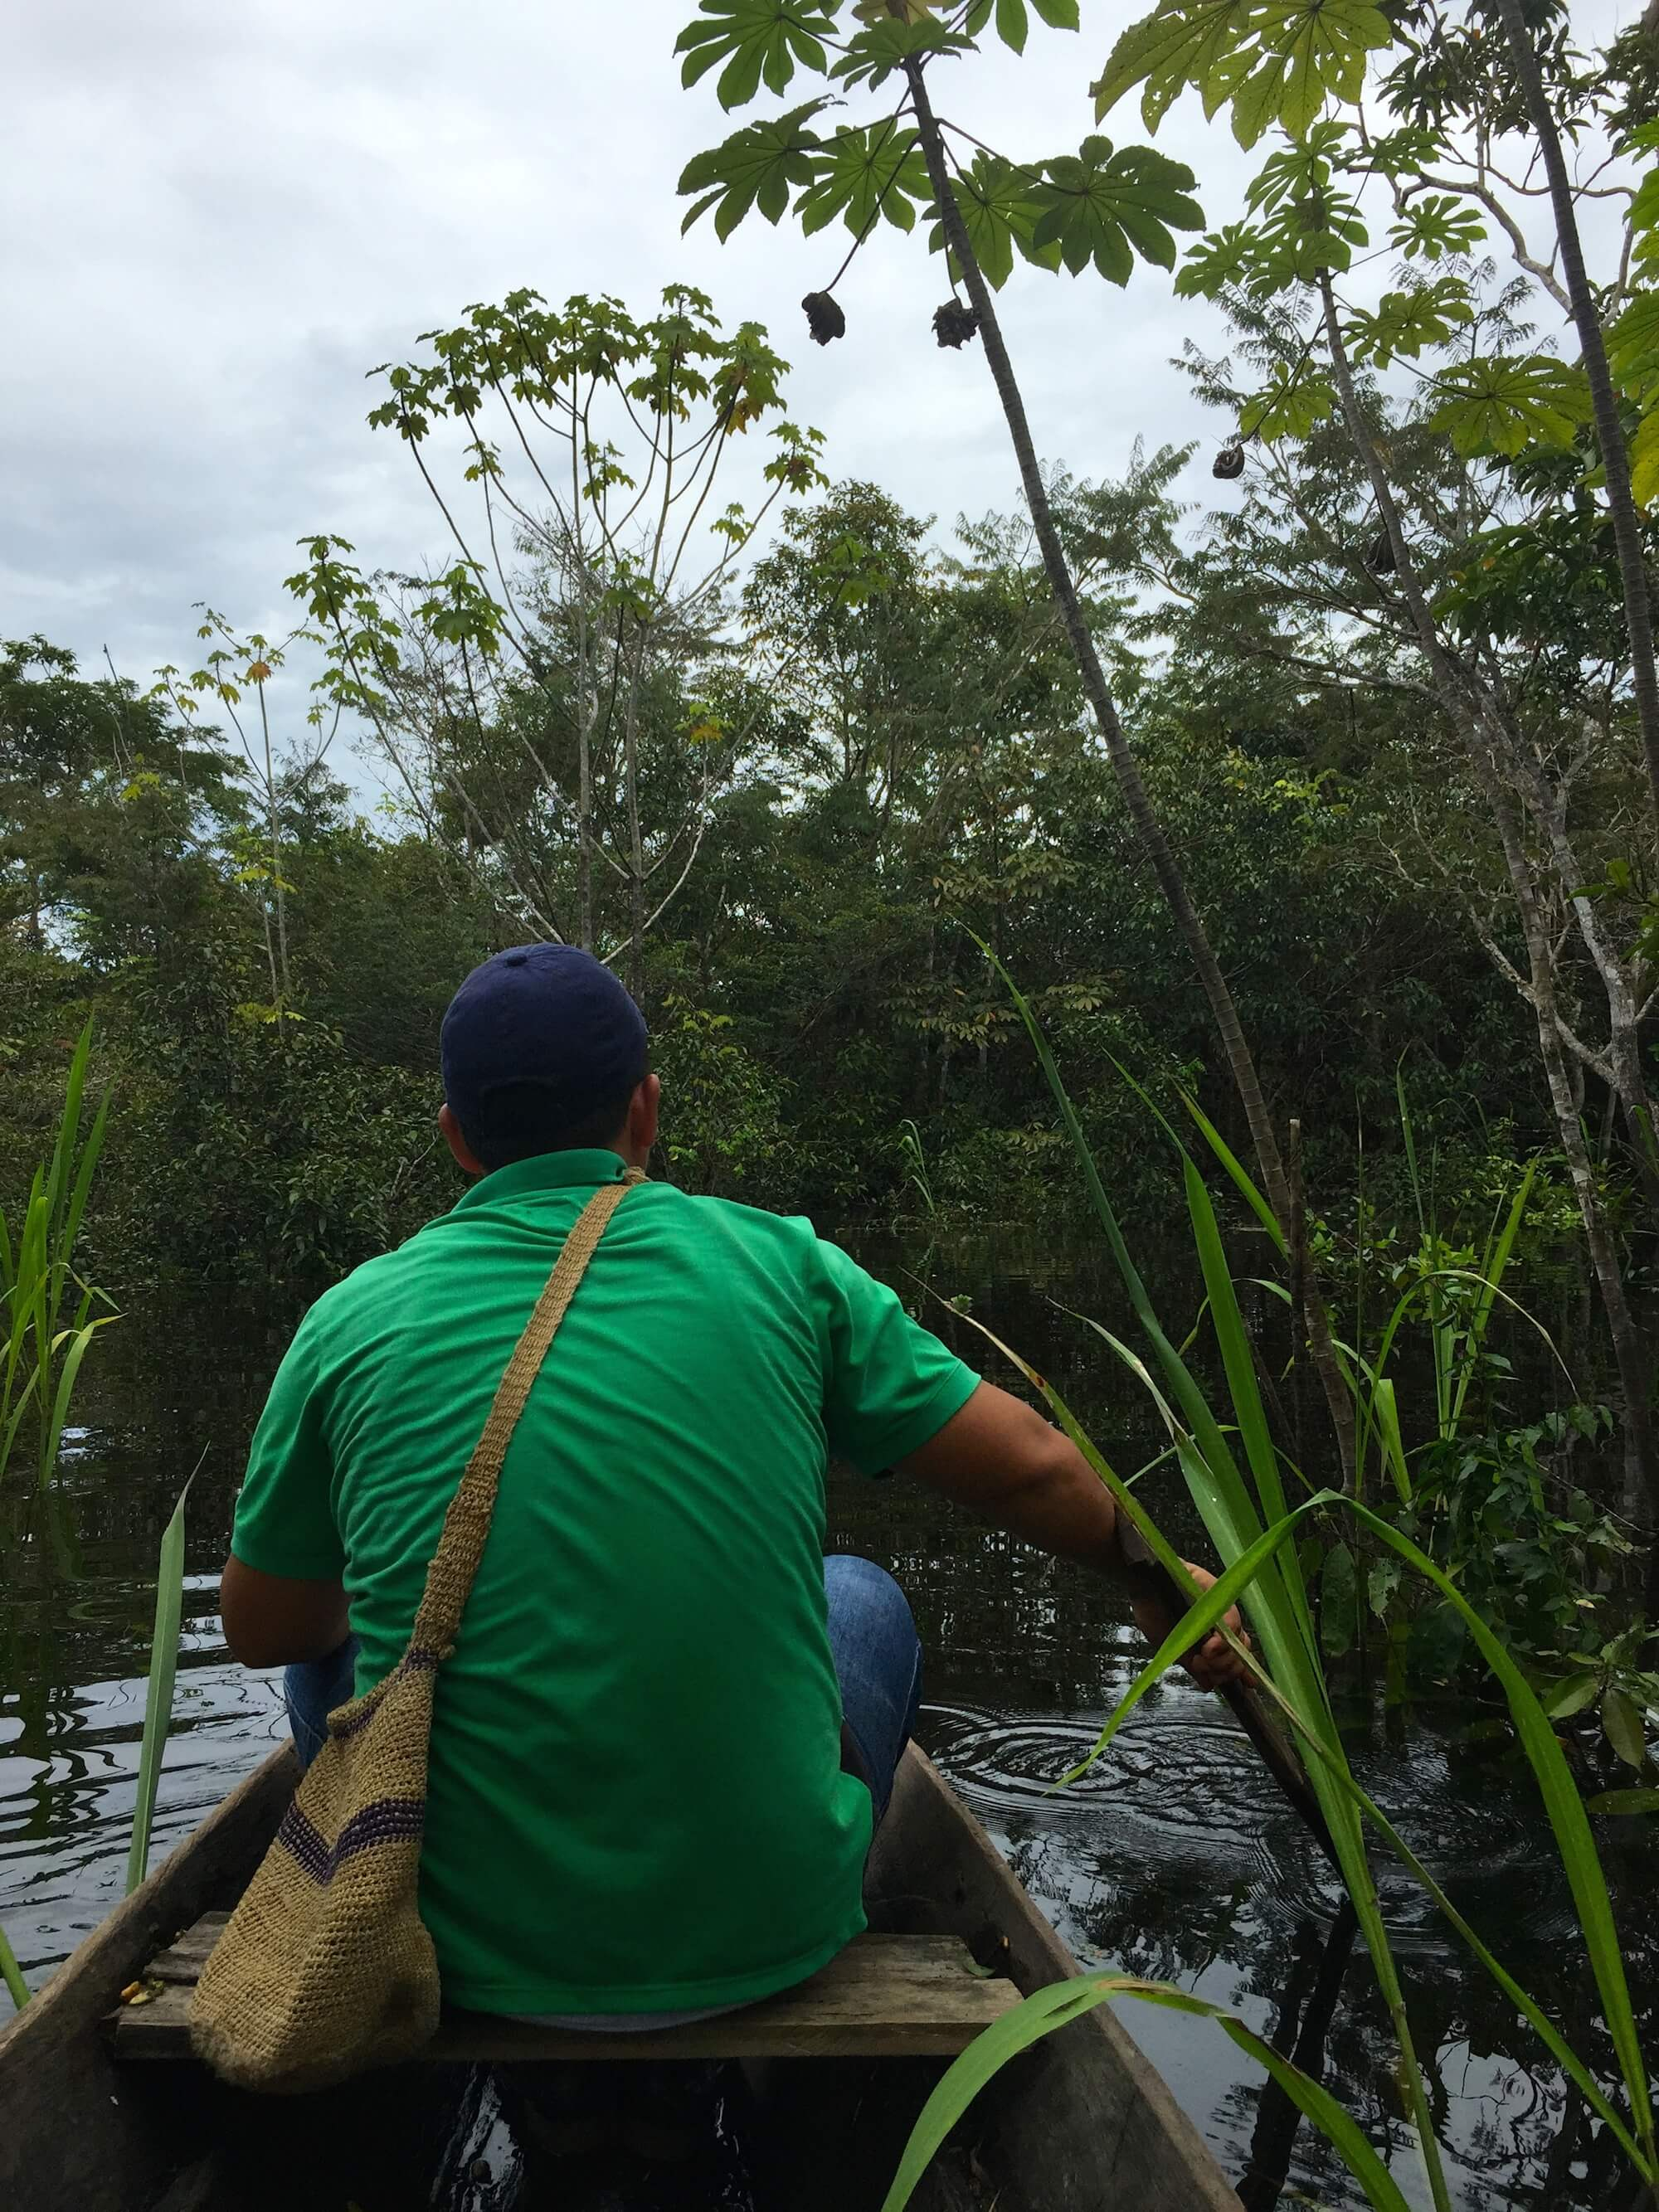 Traditional tribes in the Amazon still hunt, gather, and fish throughout the jungle